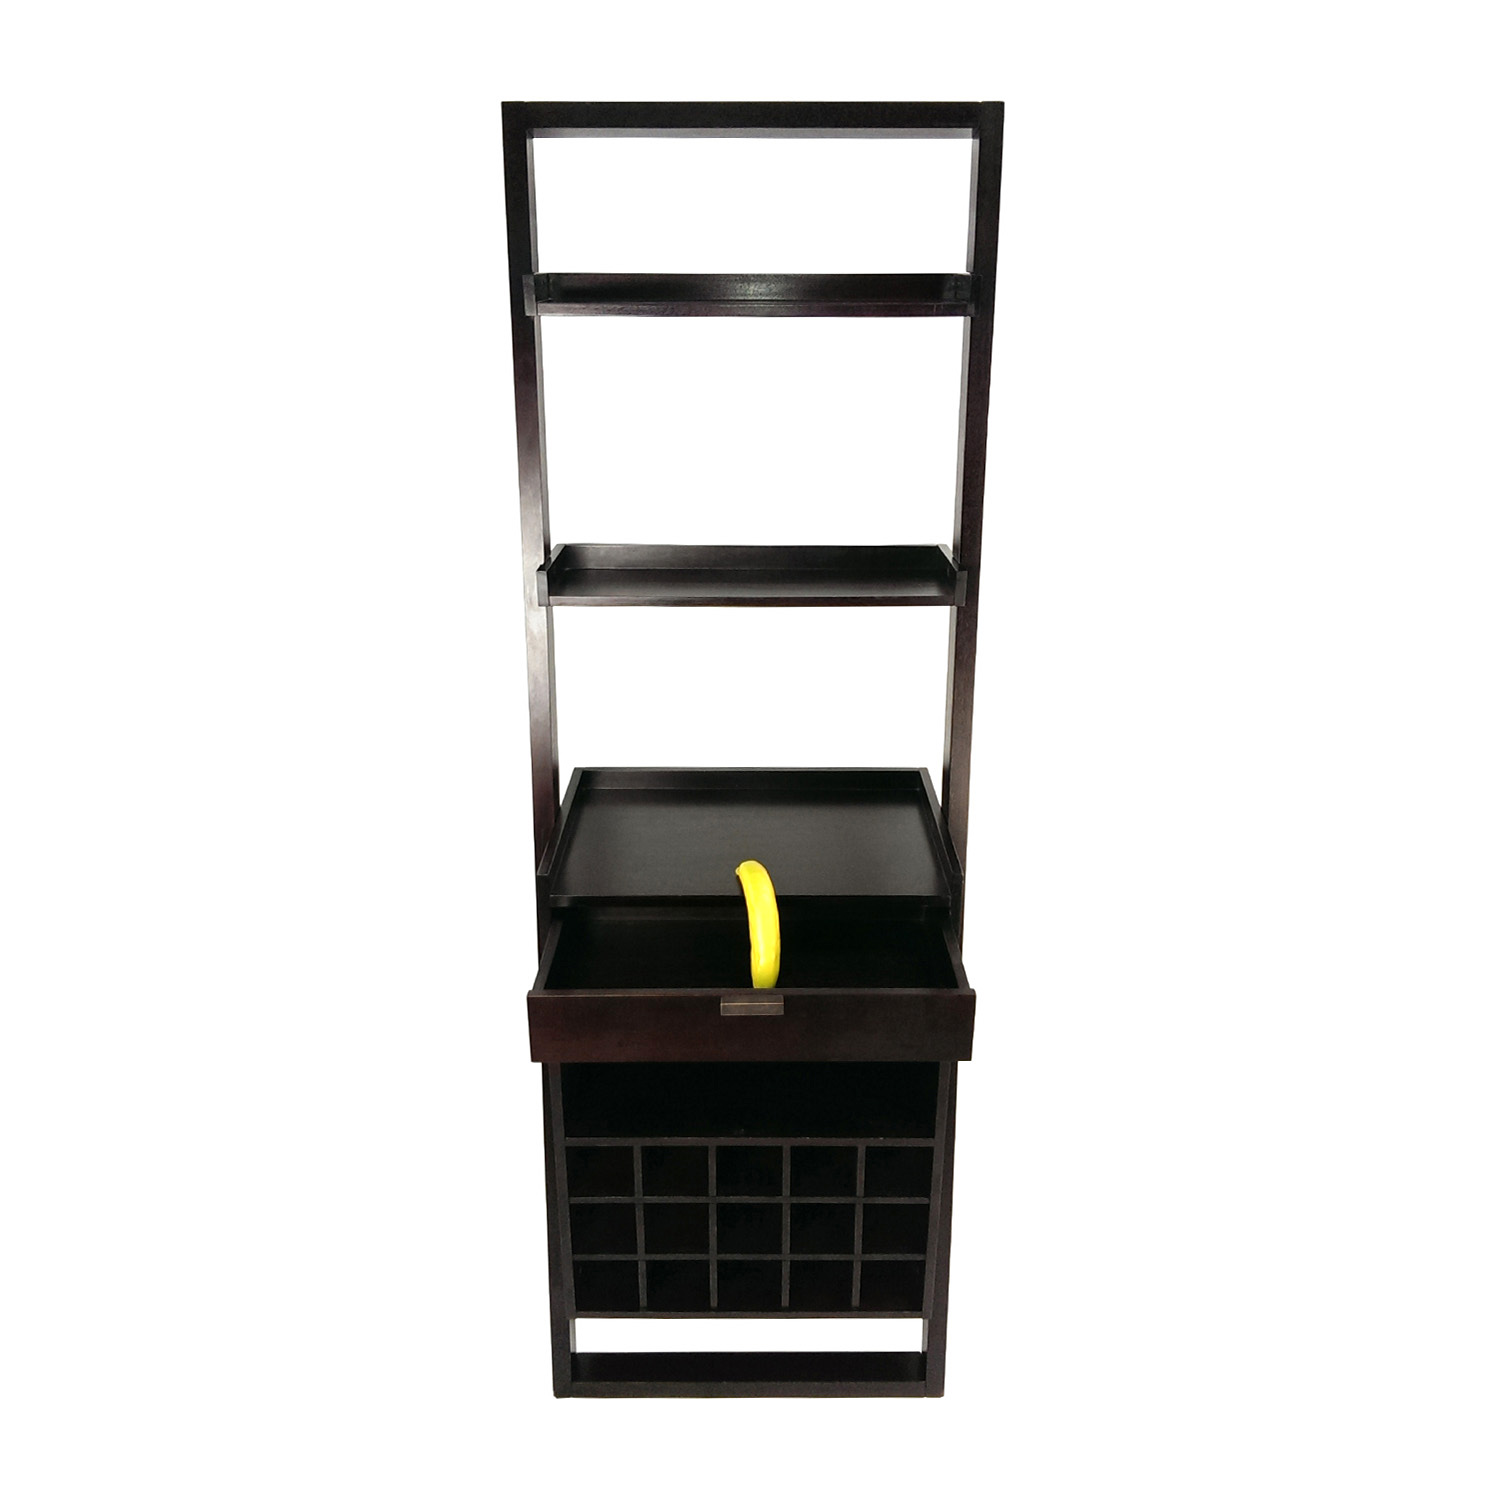 shop Crate and Barrel Leaning Wine Rack Crate and Barrel Bookcases & Shelving